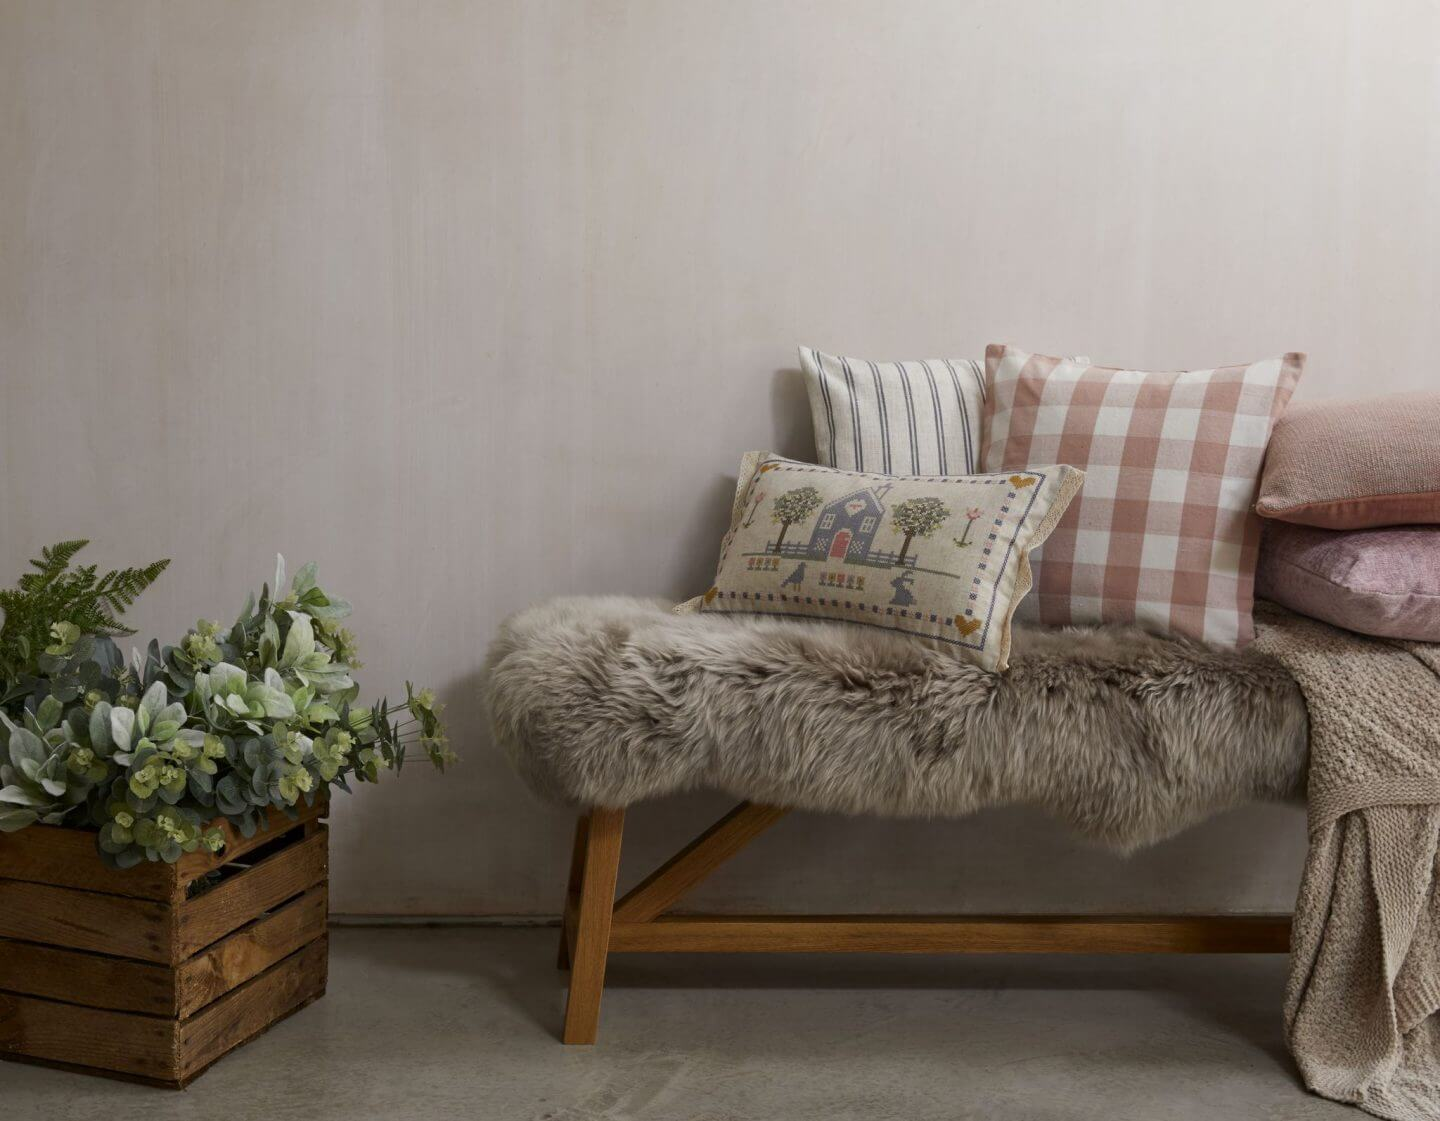 Dunelm throws and cushions for Christmas home decor under £40